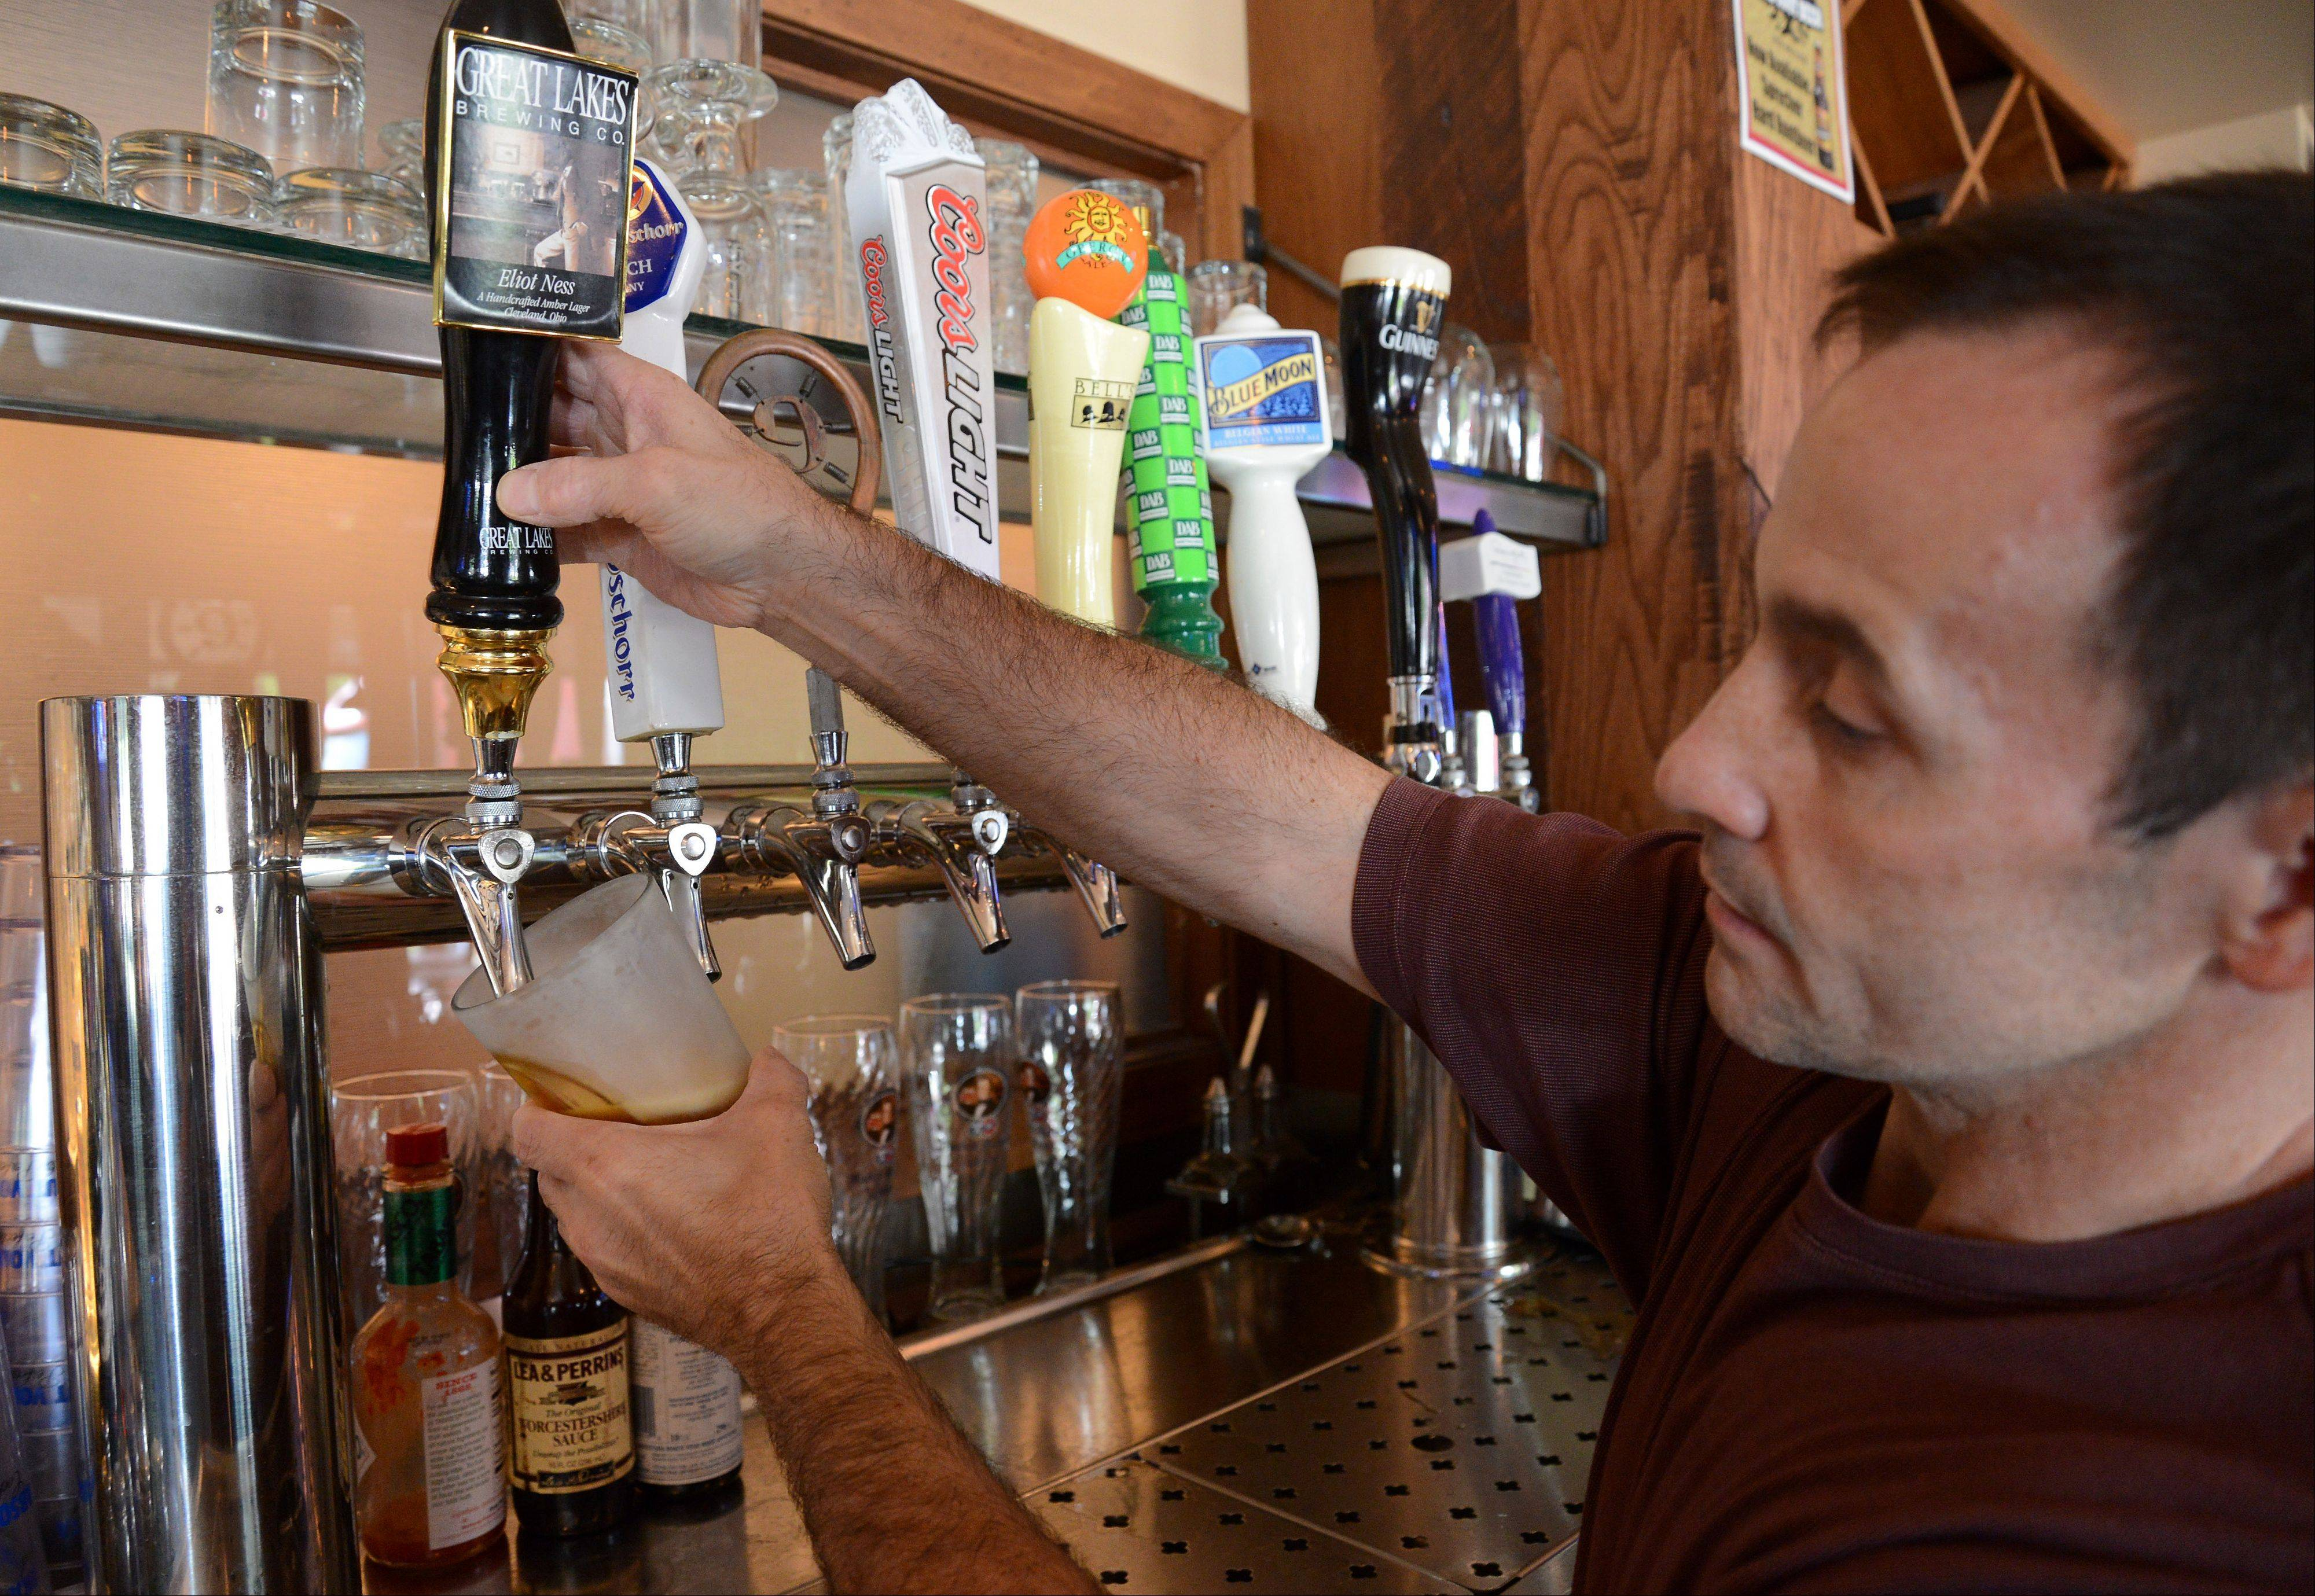 Jeff D'Agostino pours a Great Lakes Eliot Ness at D'Agostino's Pizza and Pub in Wheeling.